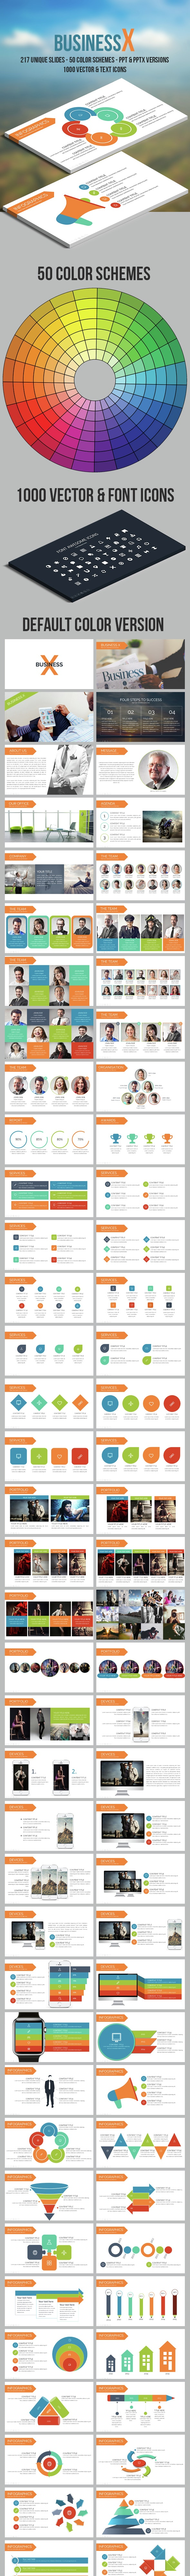 Business X Powerpoint Template - Business PowerPoint Templates